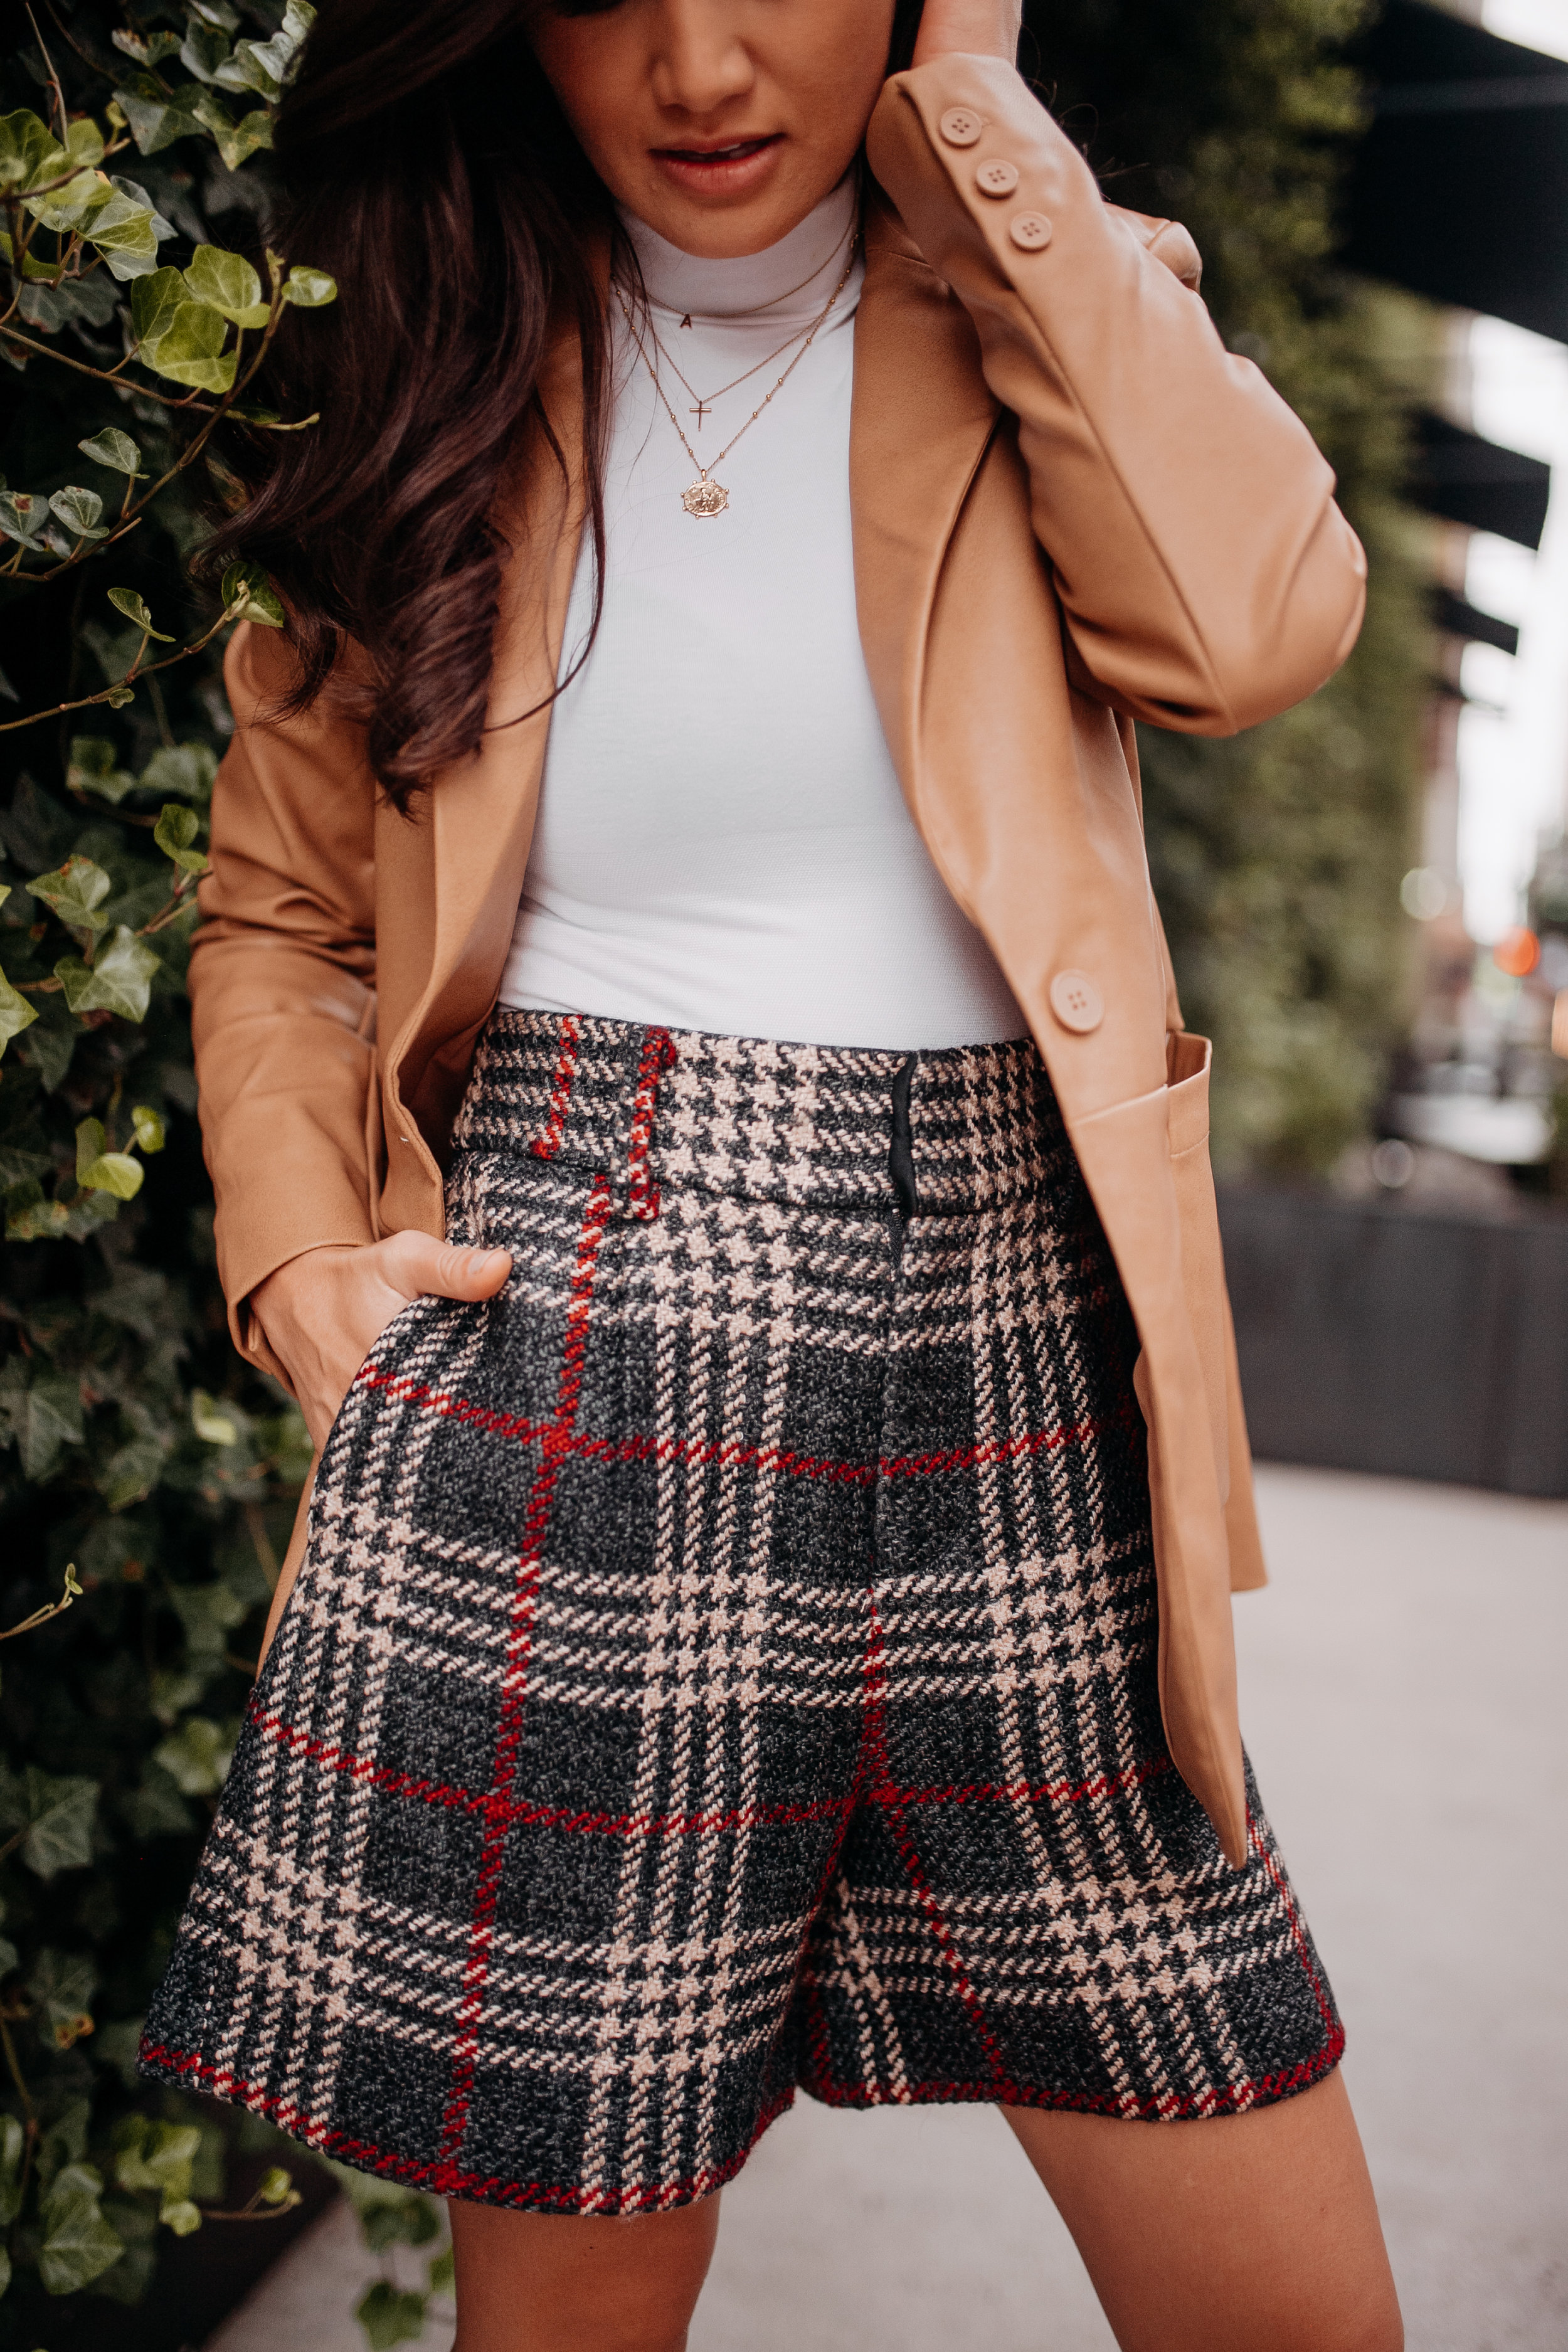 Caila Quinn The Bachelor Express Clothing Fall NYFW New York Fashion Week 2019 plaid shorts leather blazer white turtleneck outfit